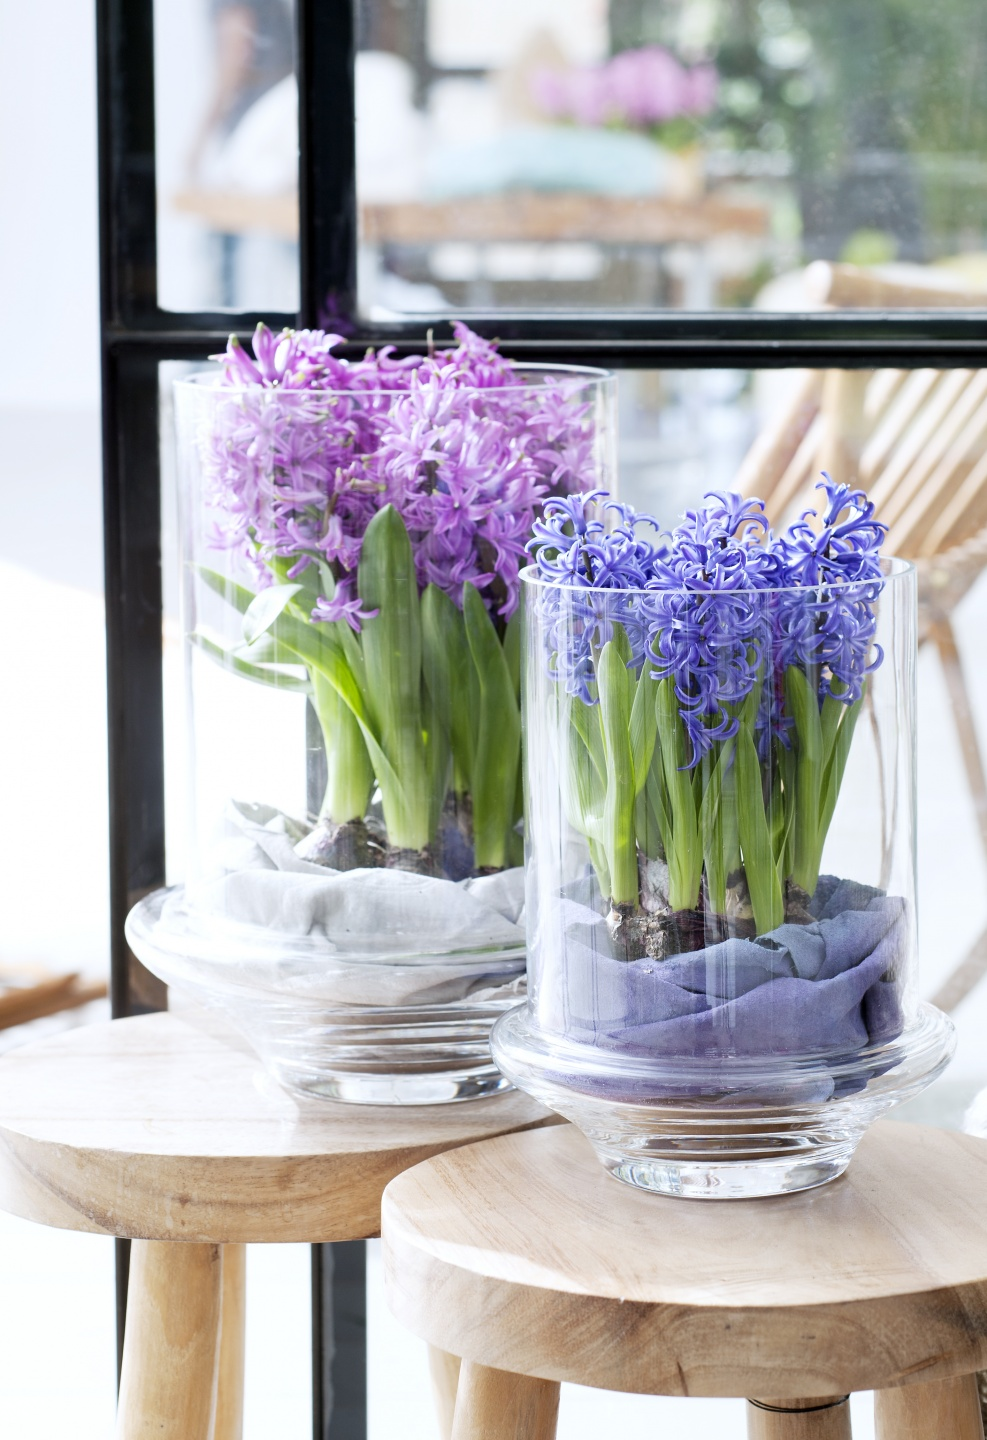 December 2015: the Hyacinth is the Houseplant of the month ...